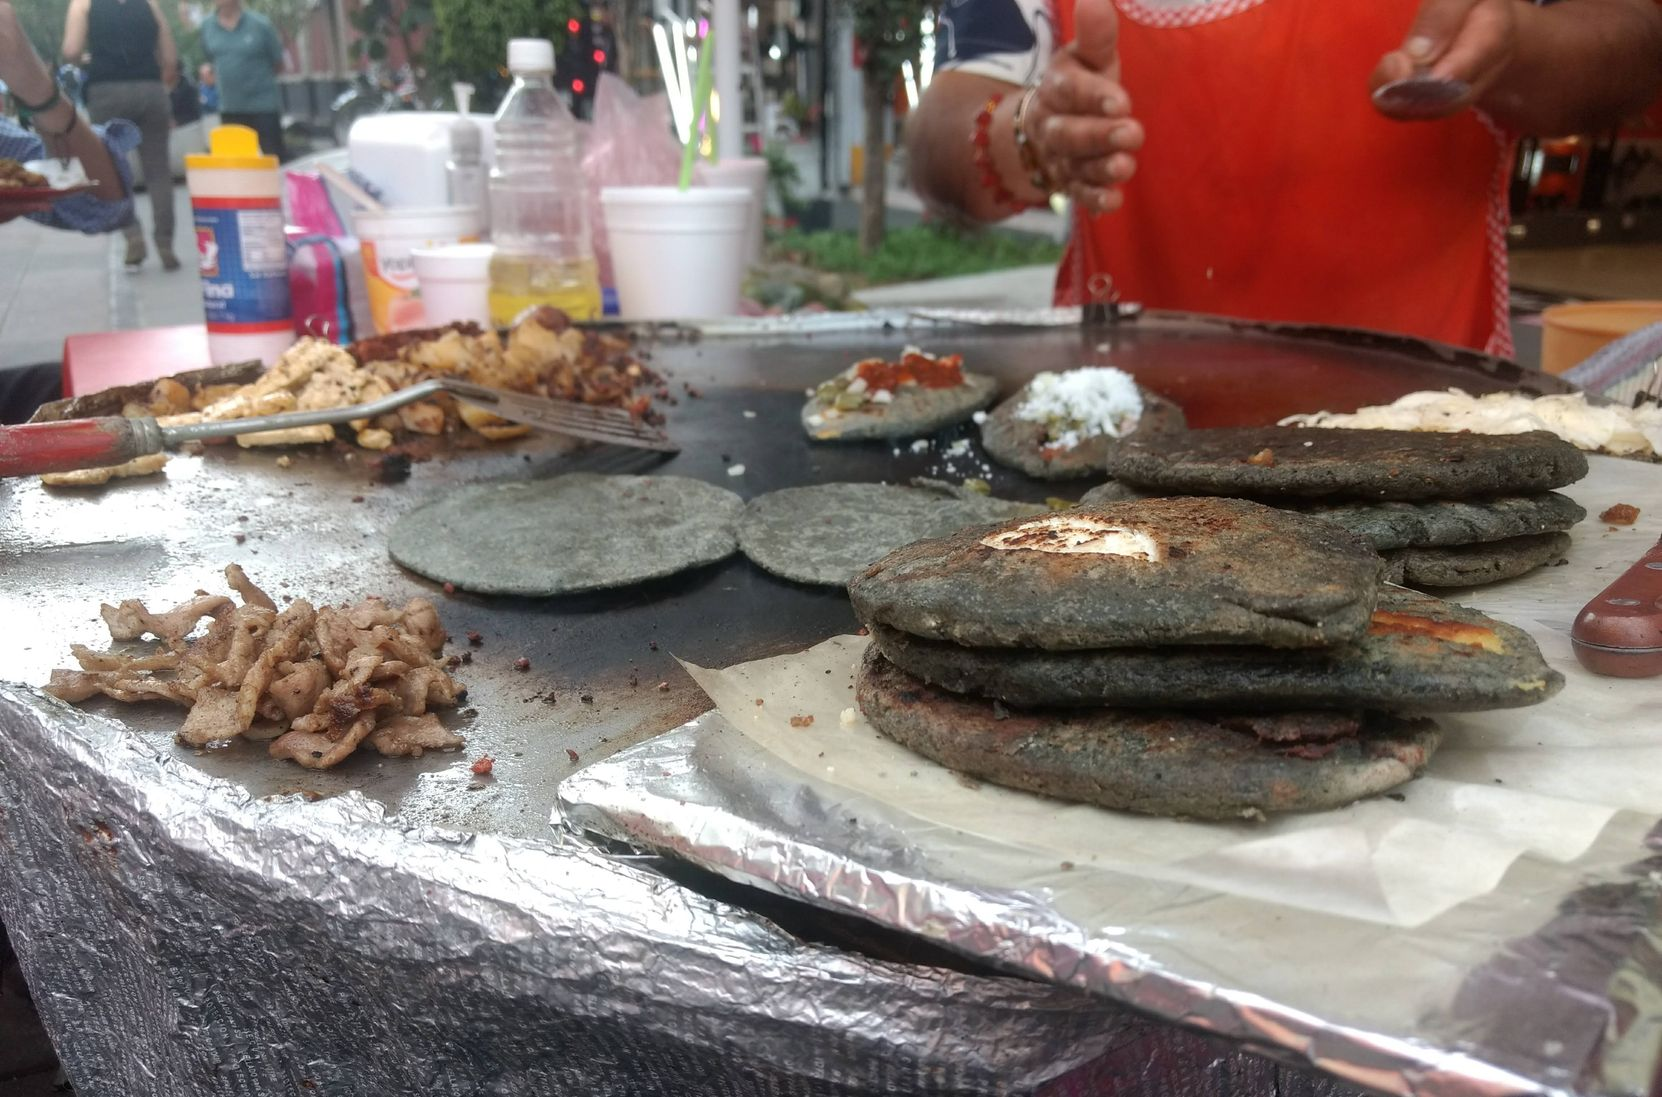 Mexico City Street Food Scene: Daily Walking Tour